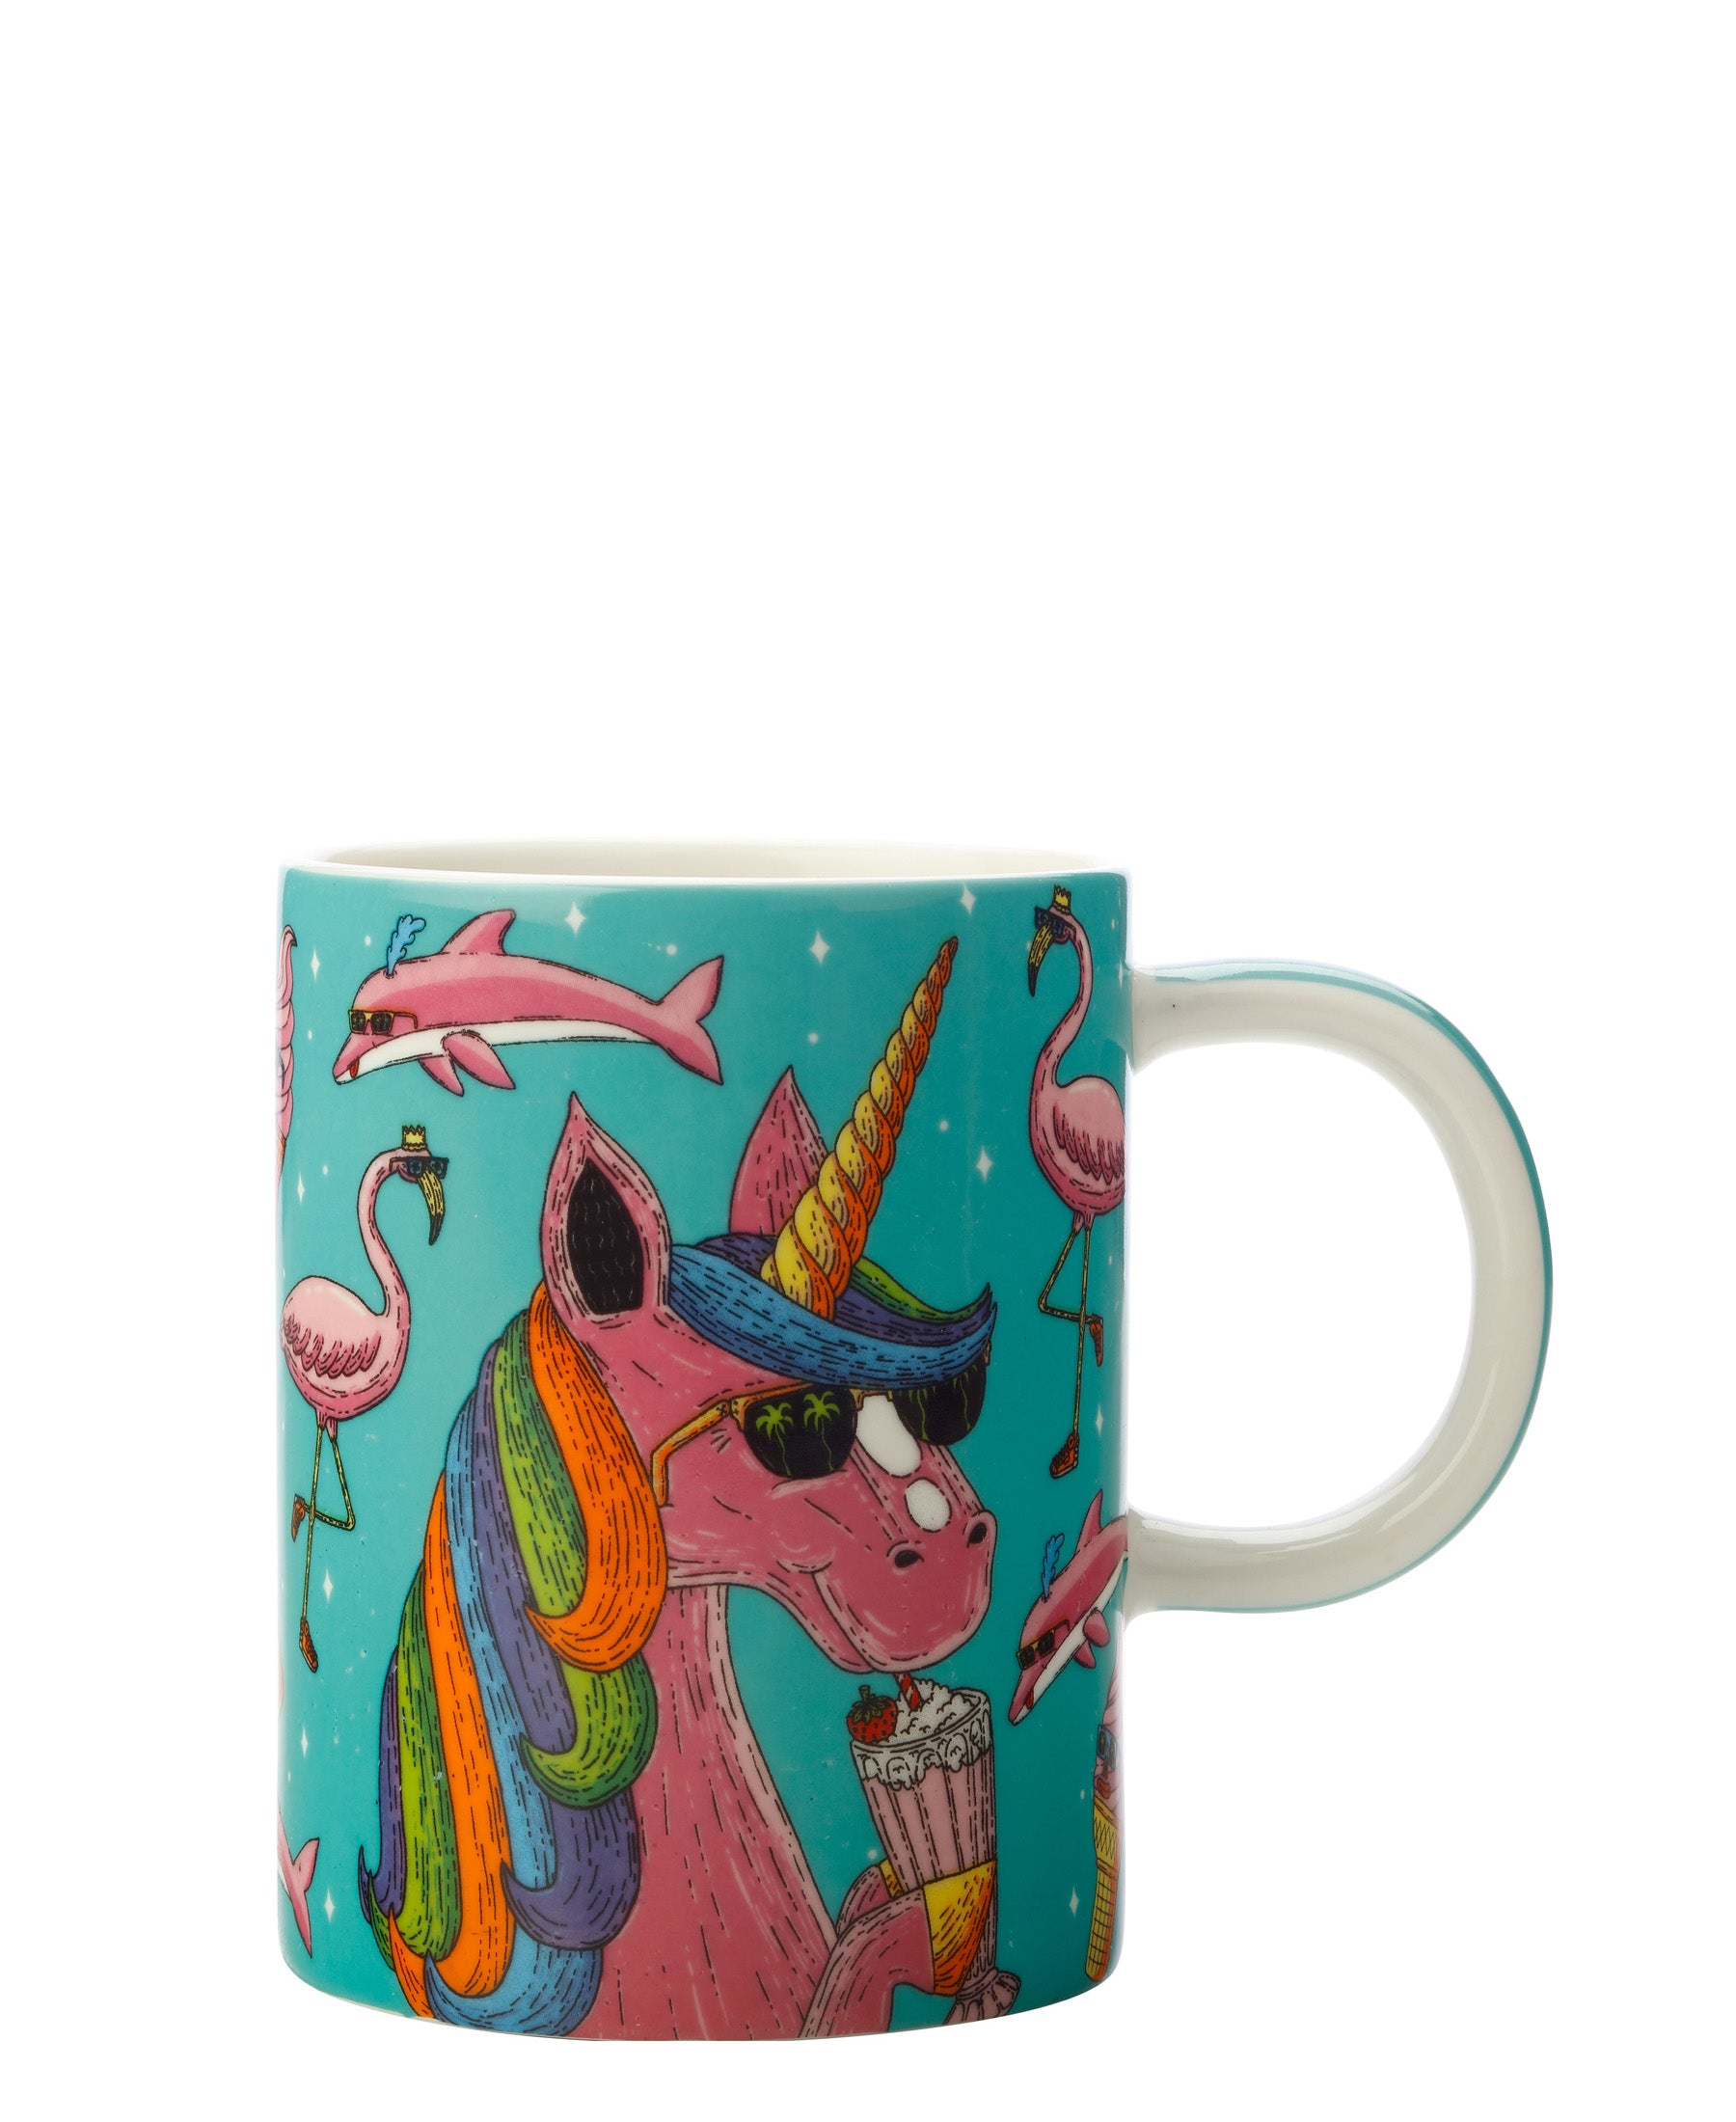 Mulga the Artist Mug 410ML Unicorn